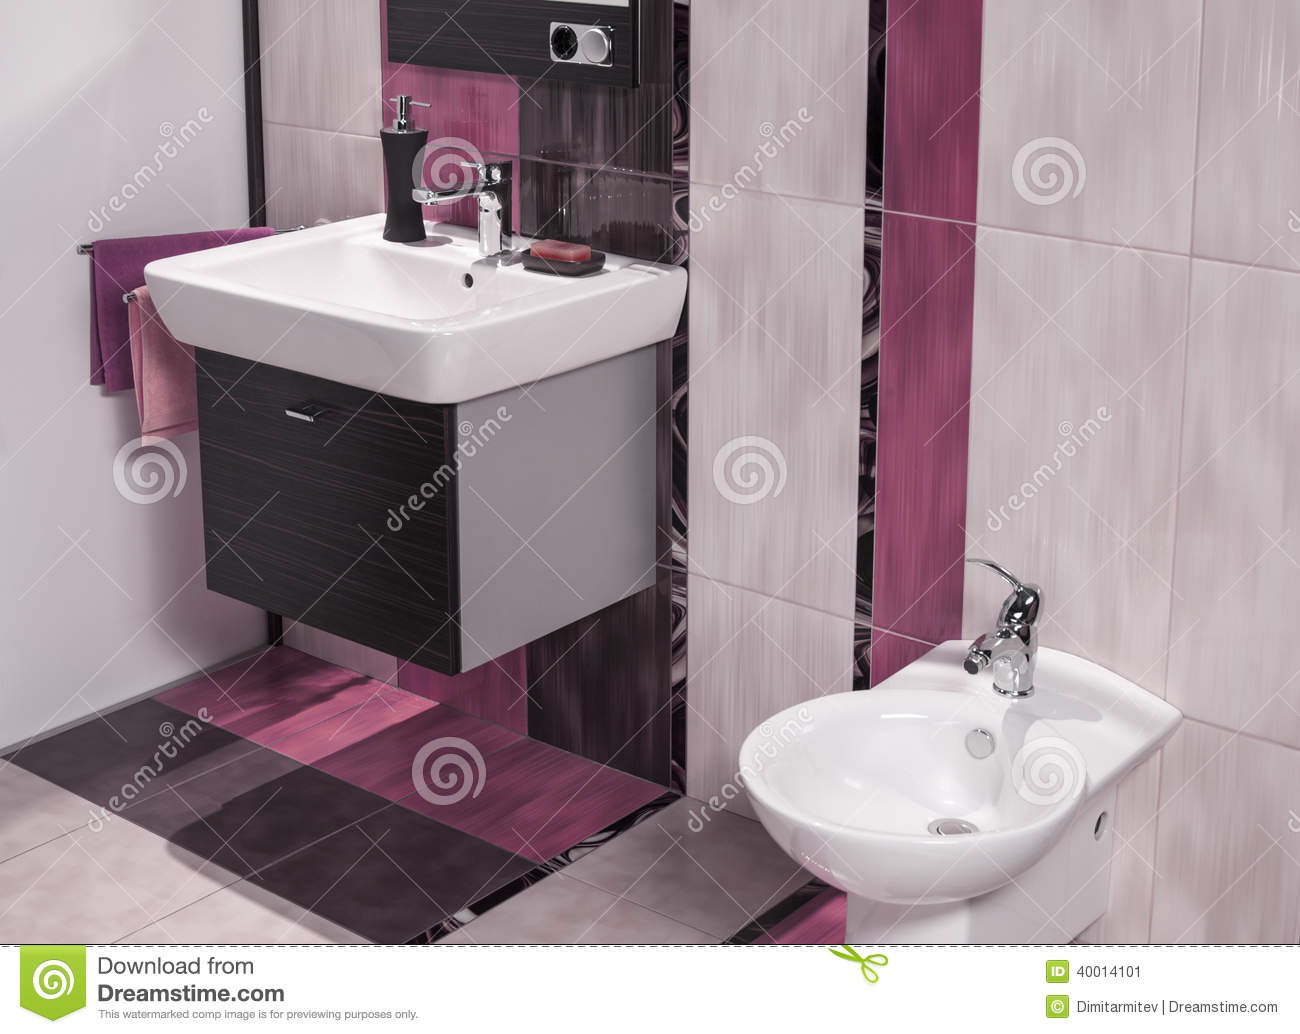 Detail Of Modern Bathroom With Sink And Bidet Stock Image - Image of ...